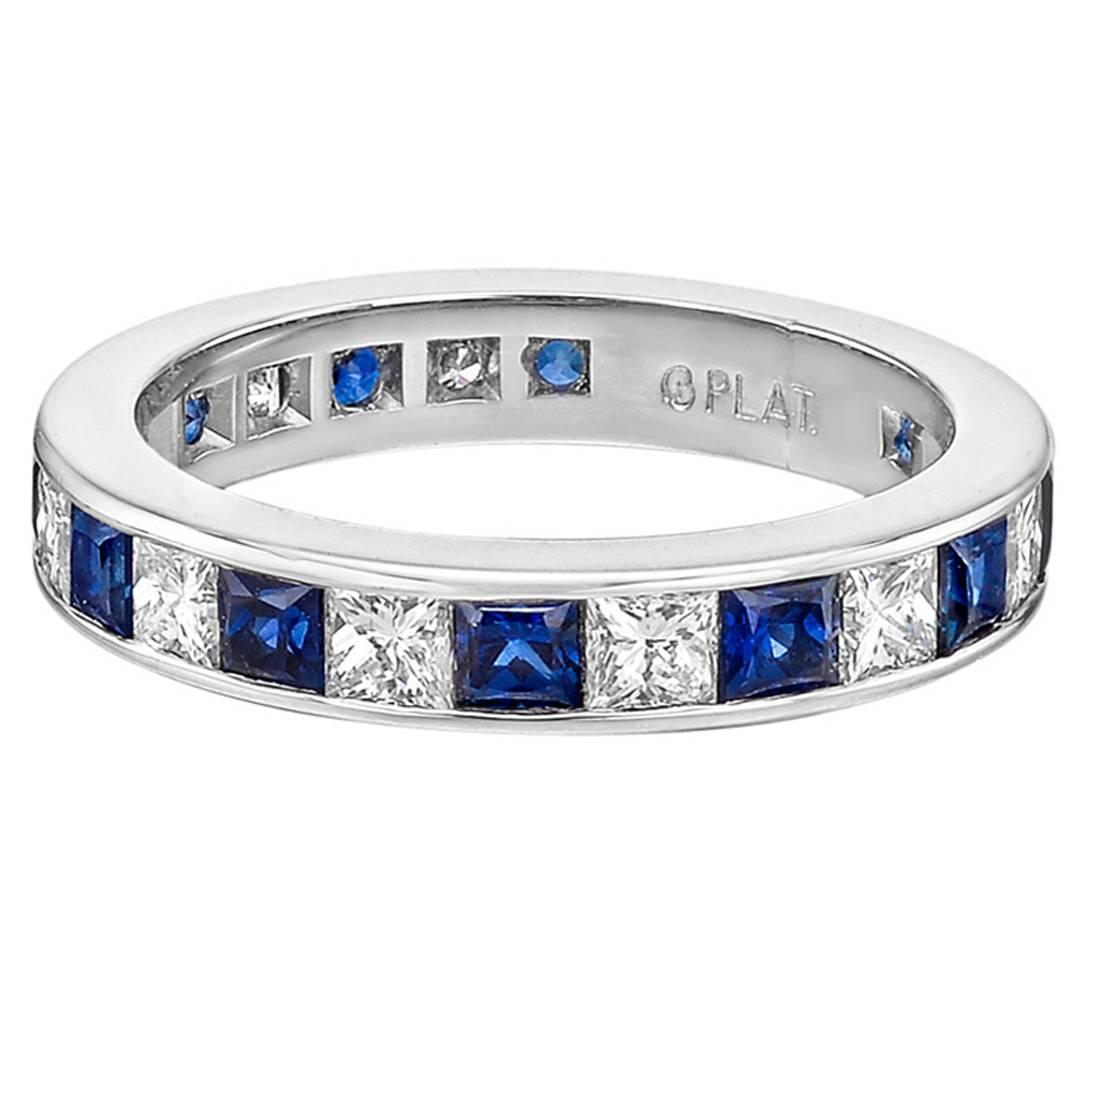 ring size wa wablue literarywondrous of andiamond rings and photos sapphire band blue rope diamondnity tacoma diamond full inspirations ringsapphire eternity